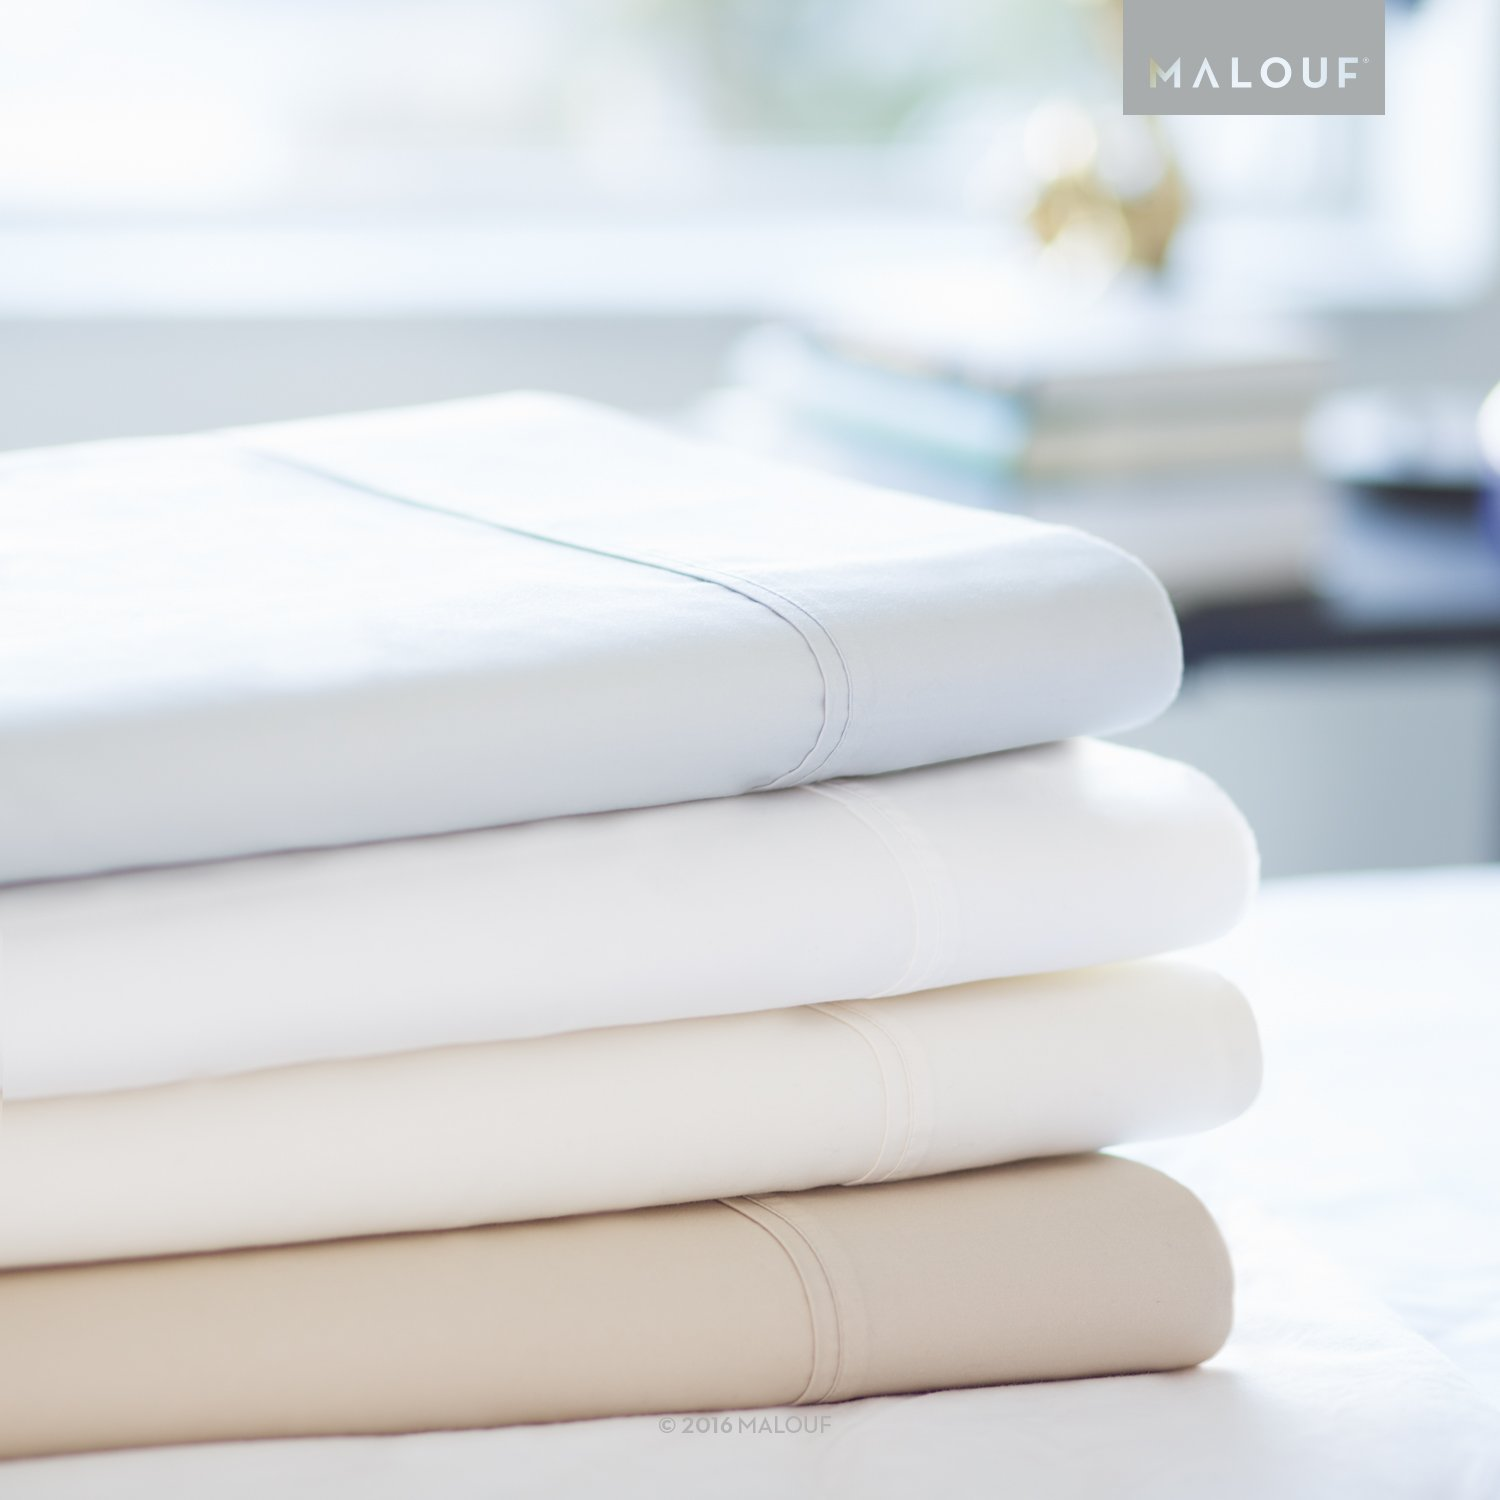 WOVEN 600 Thread Count Luxurious Feel Soft Cotton Blend Sheet Set with Deep Pocket Design - Split Queen - Driftwood by MALOUF (Image #2)